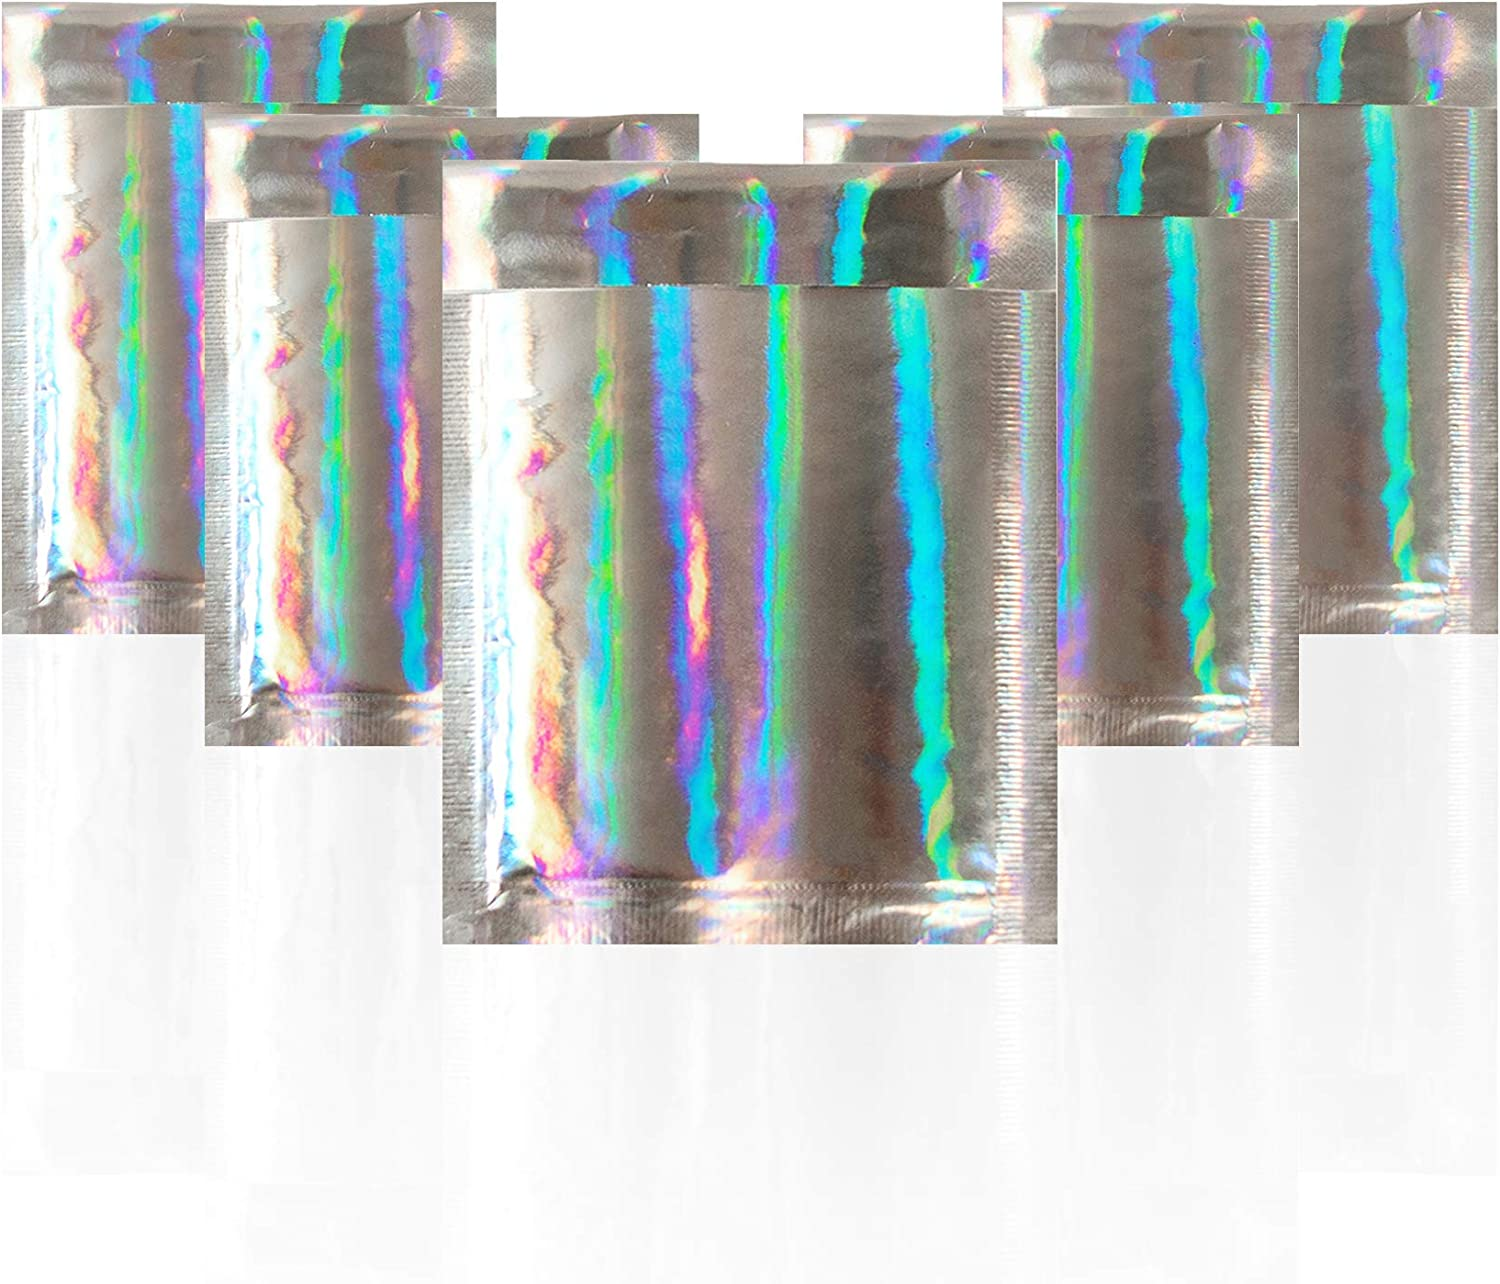 Bubble mailers 6.5 x 9 Padded envelopes 6 1/2 x 9 Pack of 10 Hologram Cushion envelopes. Peel & Seal. Holographic Glamour Metallic foil. Mailing, Shipping